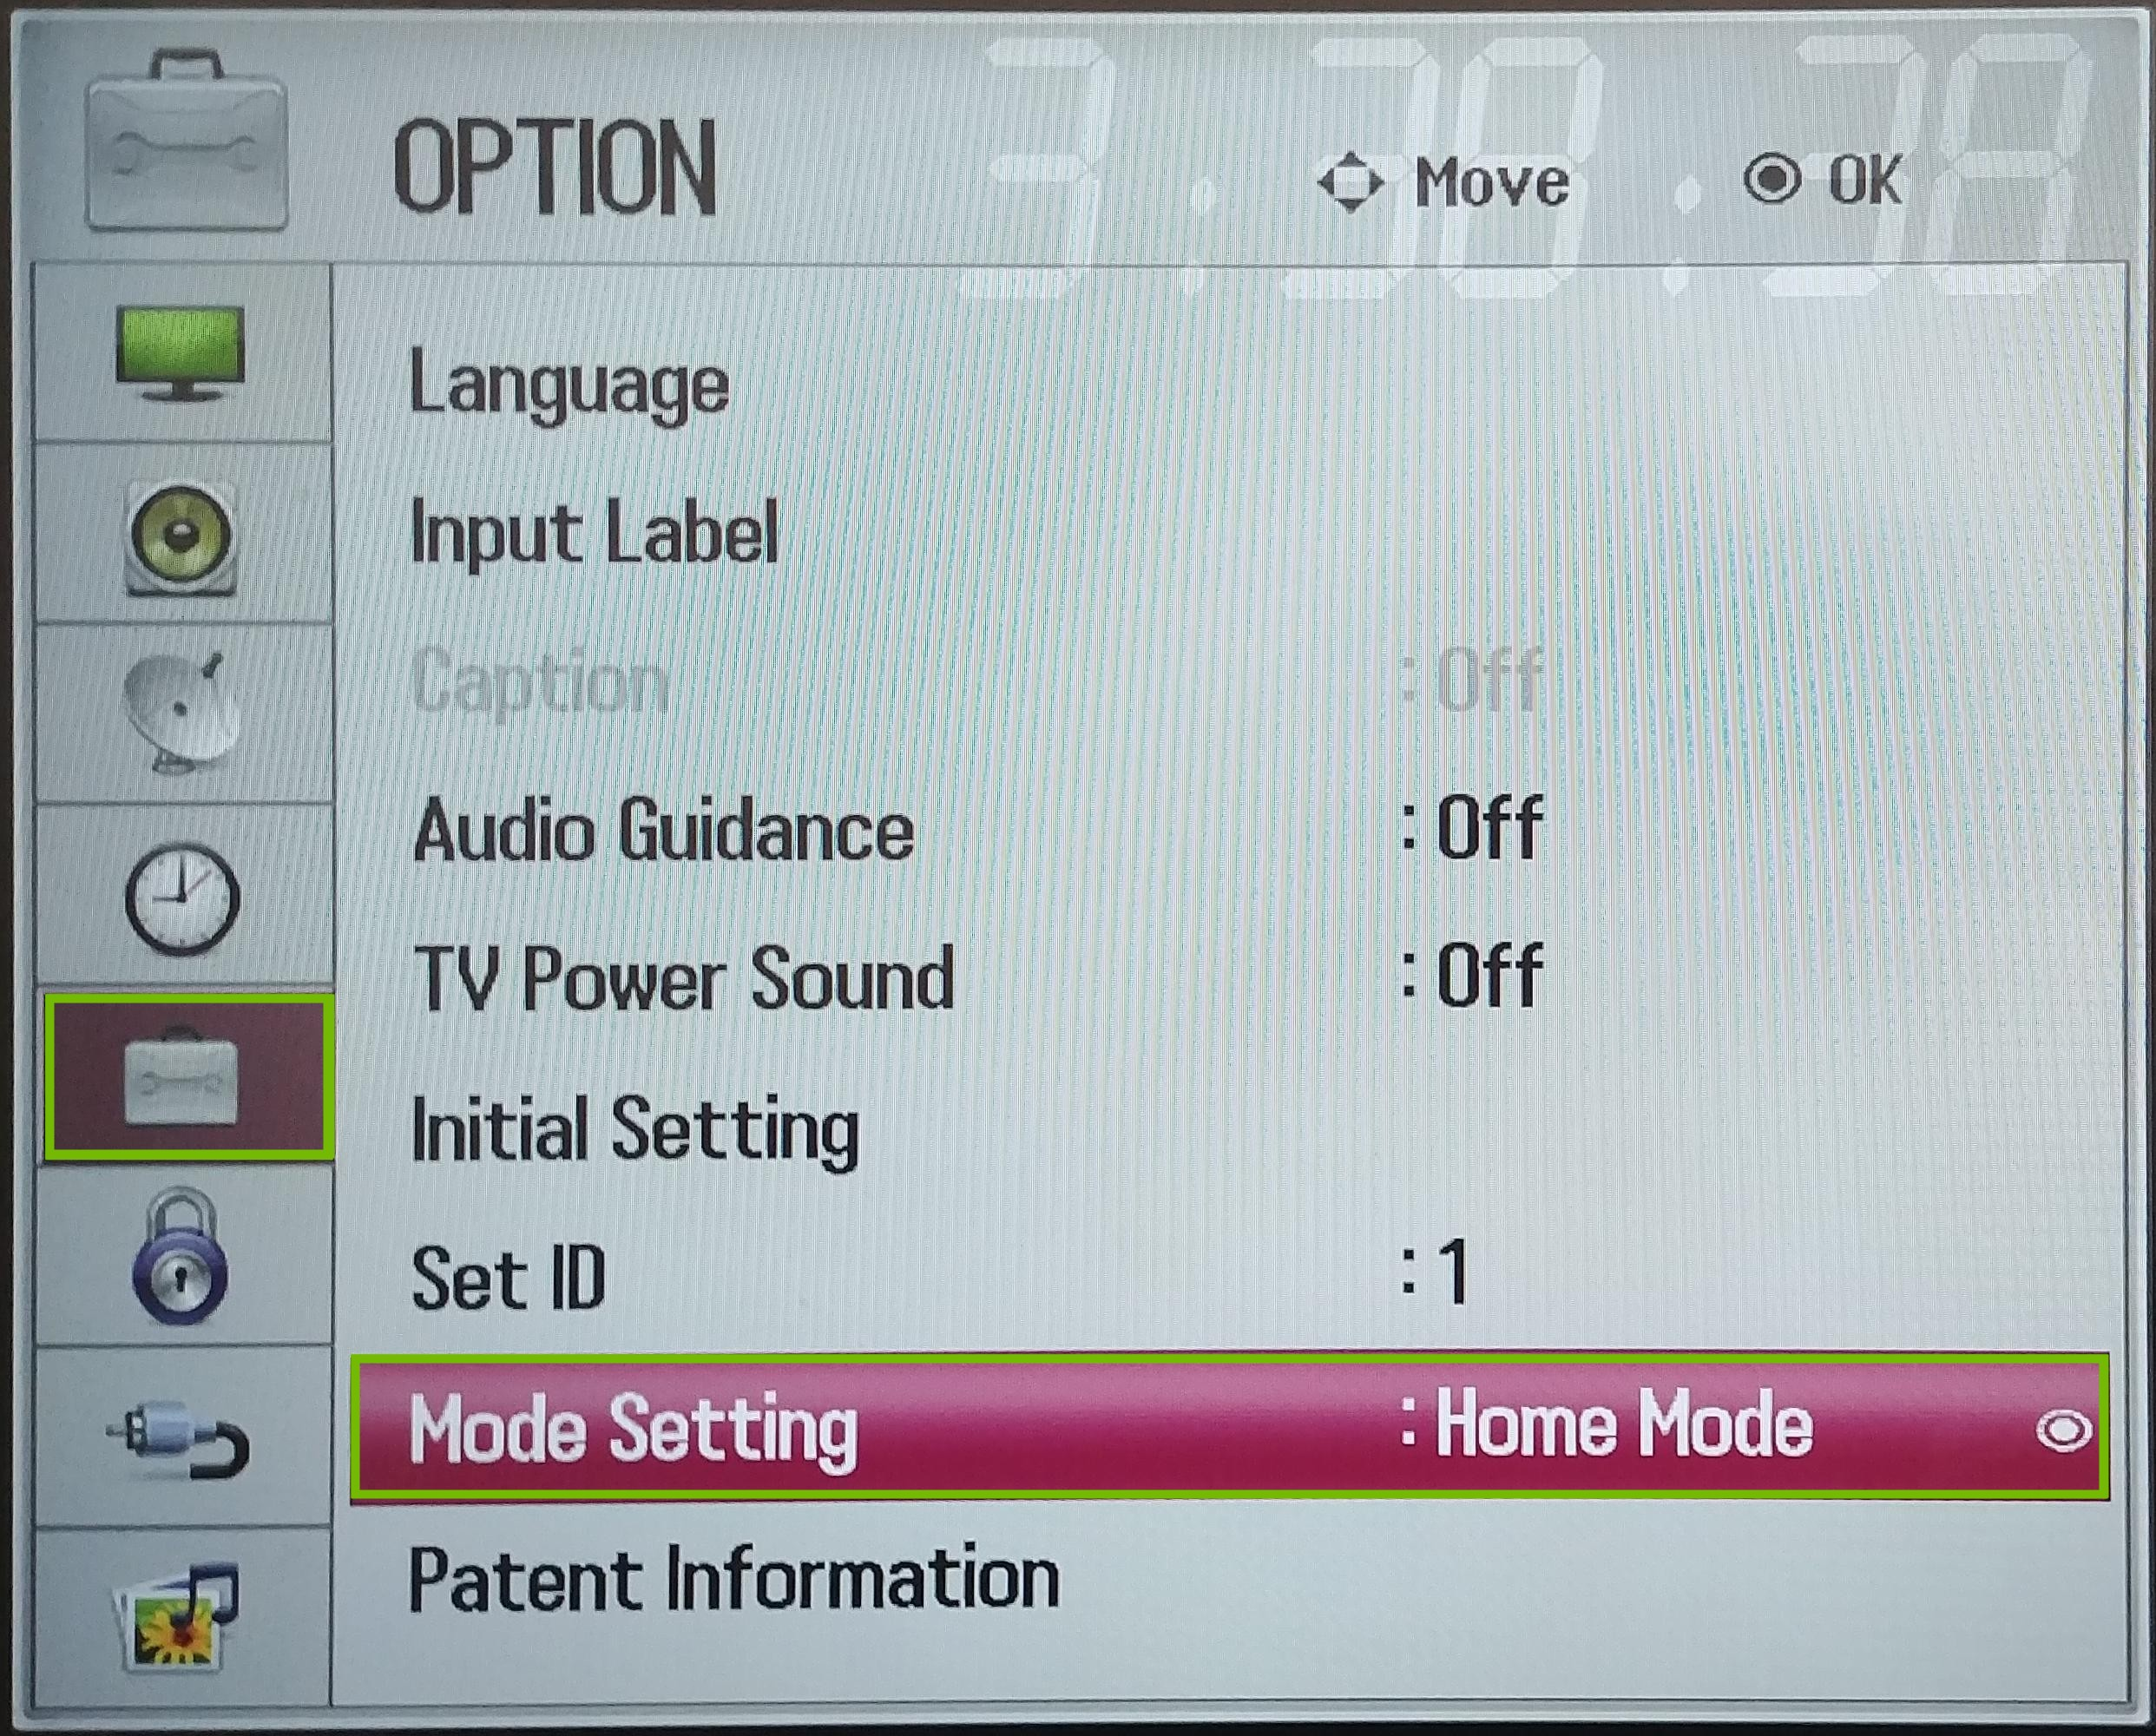 Settings Options, with Mode Setting highlighted.